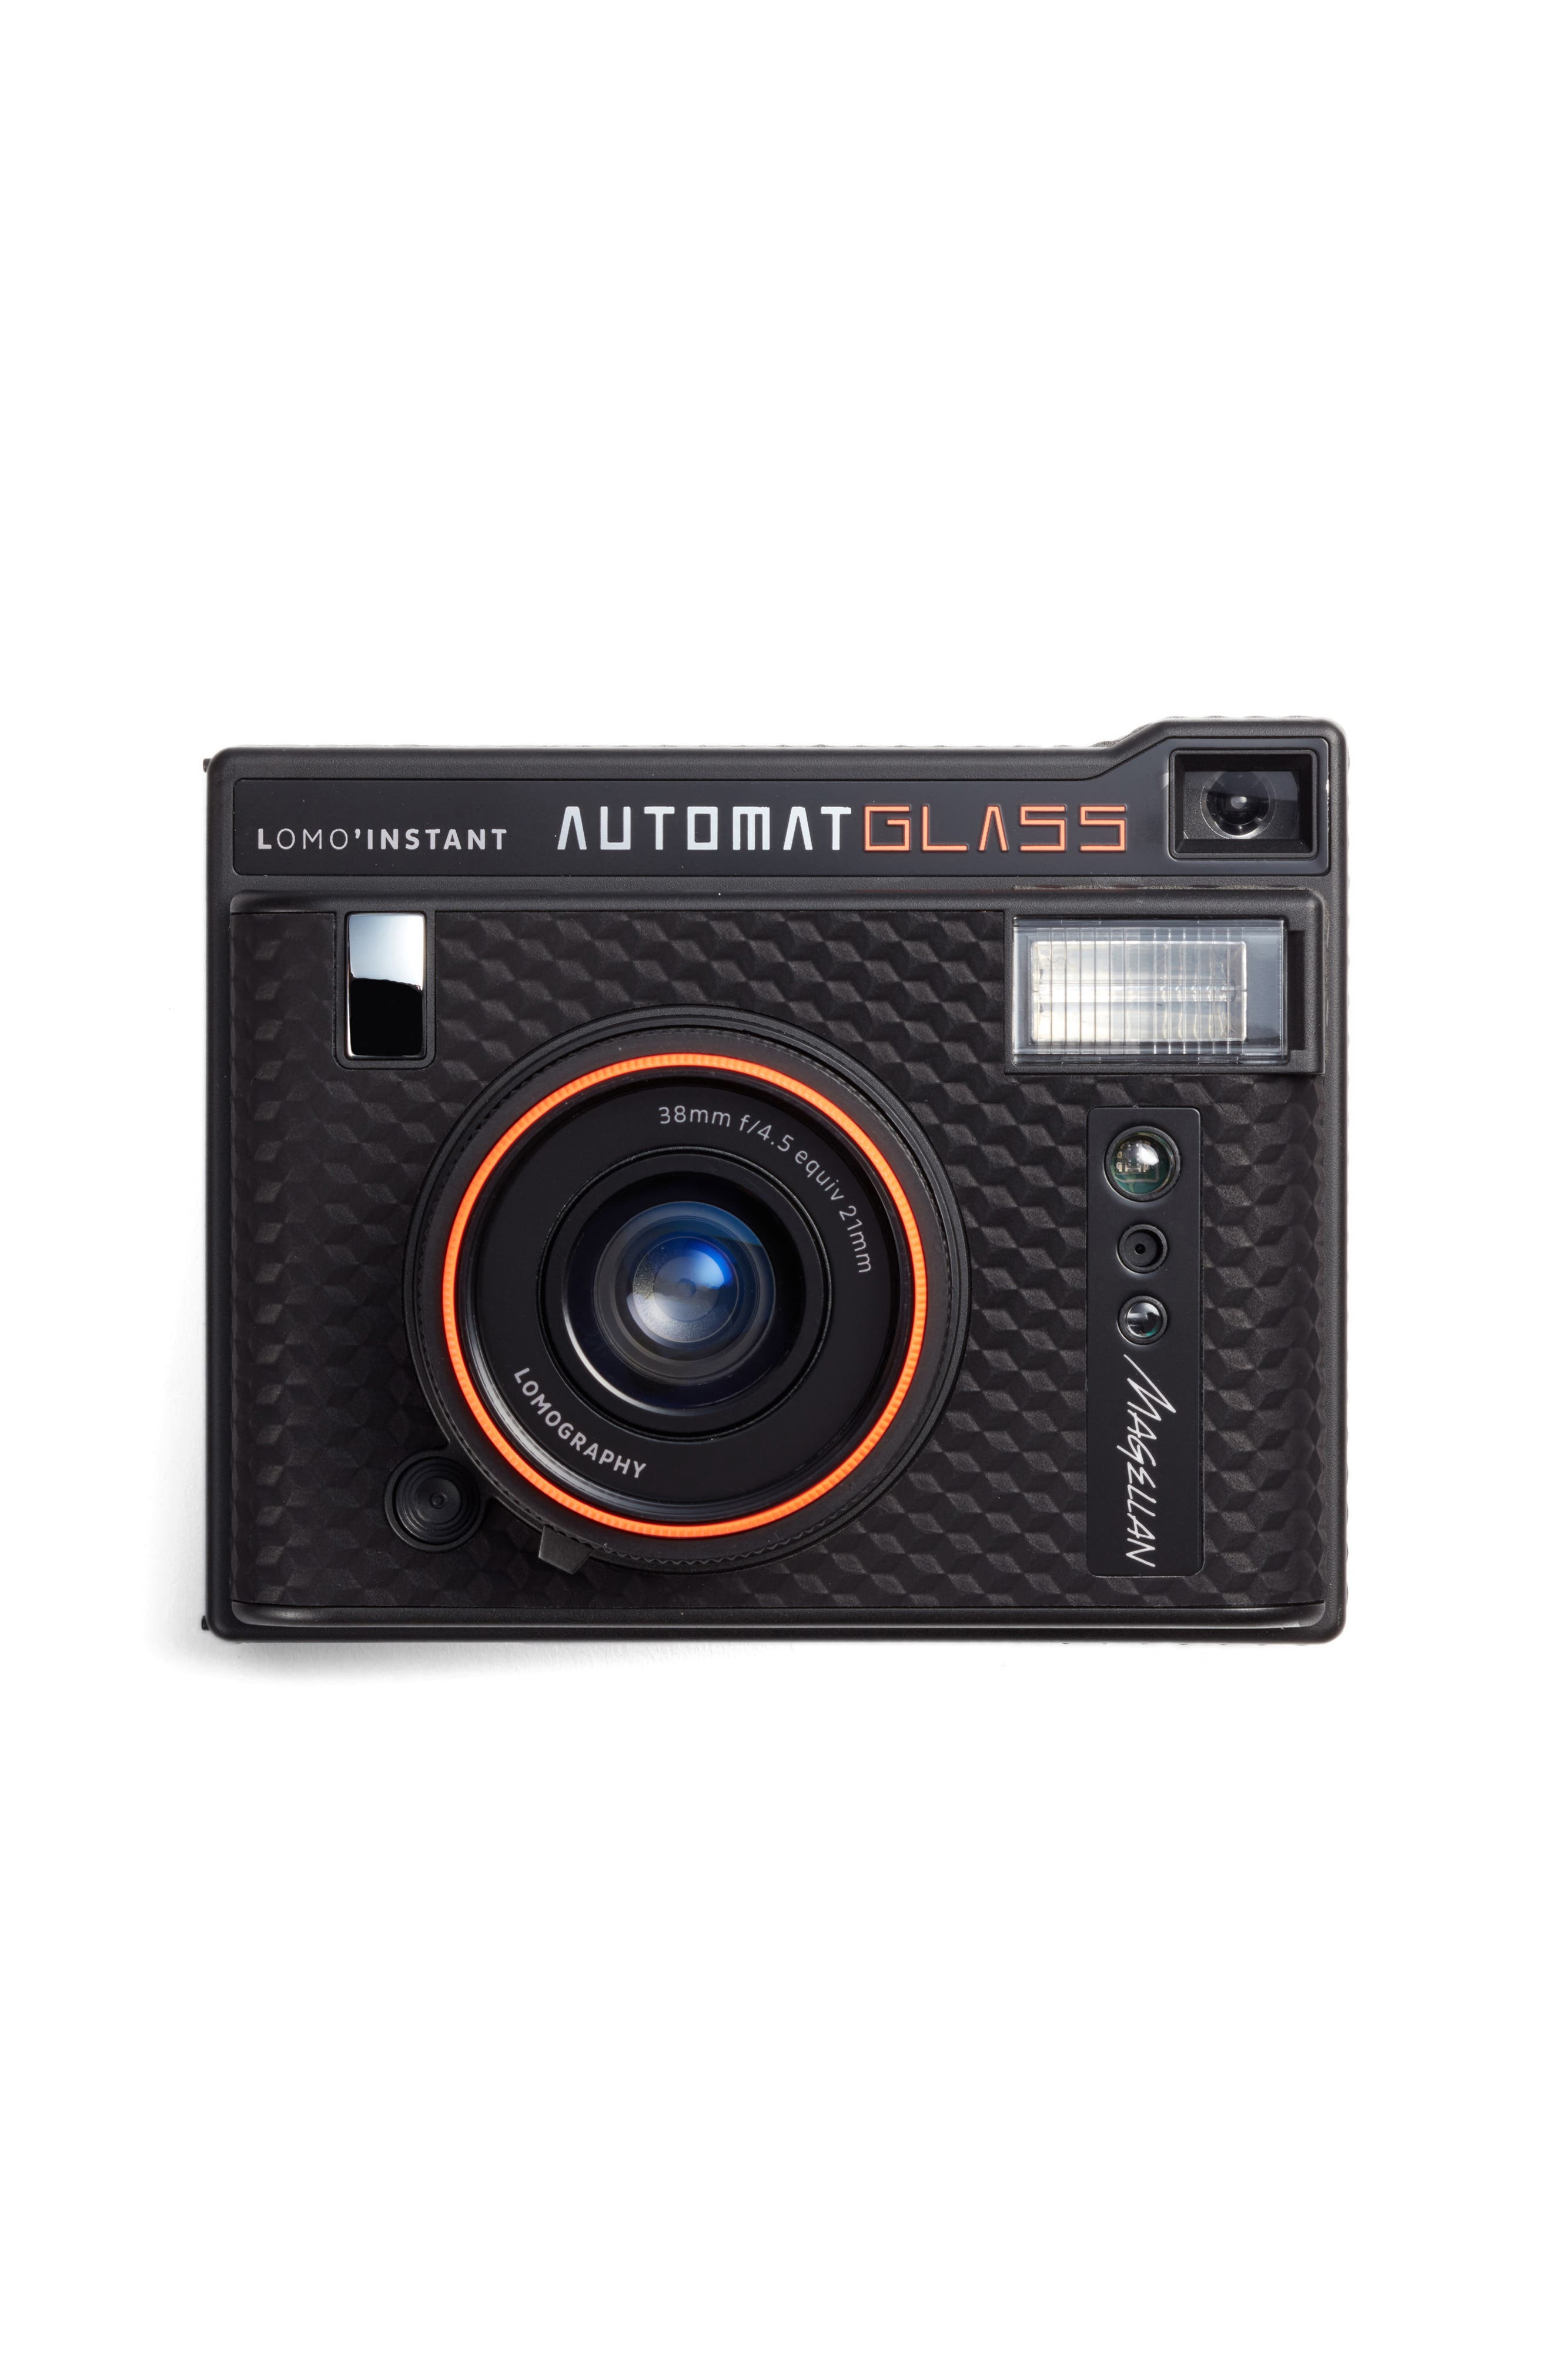 Lomography Lomo'Instant Automat Glass Instant Camera & Lenses